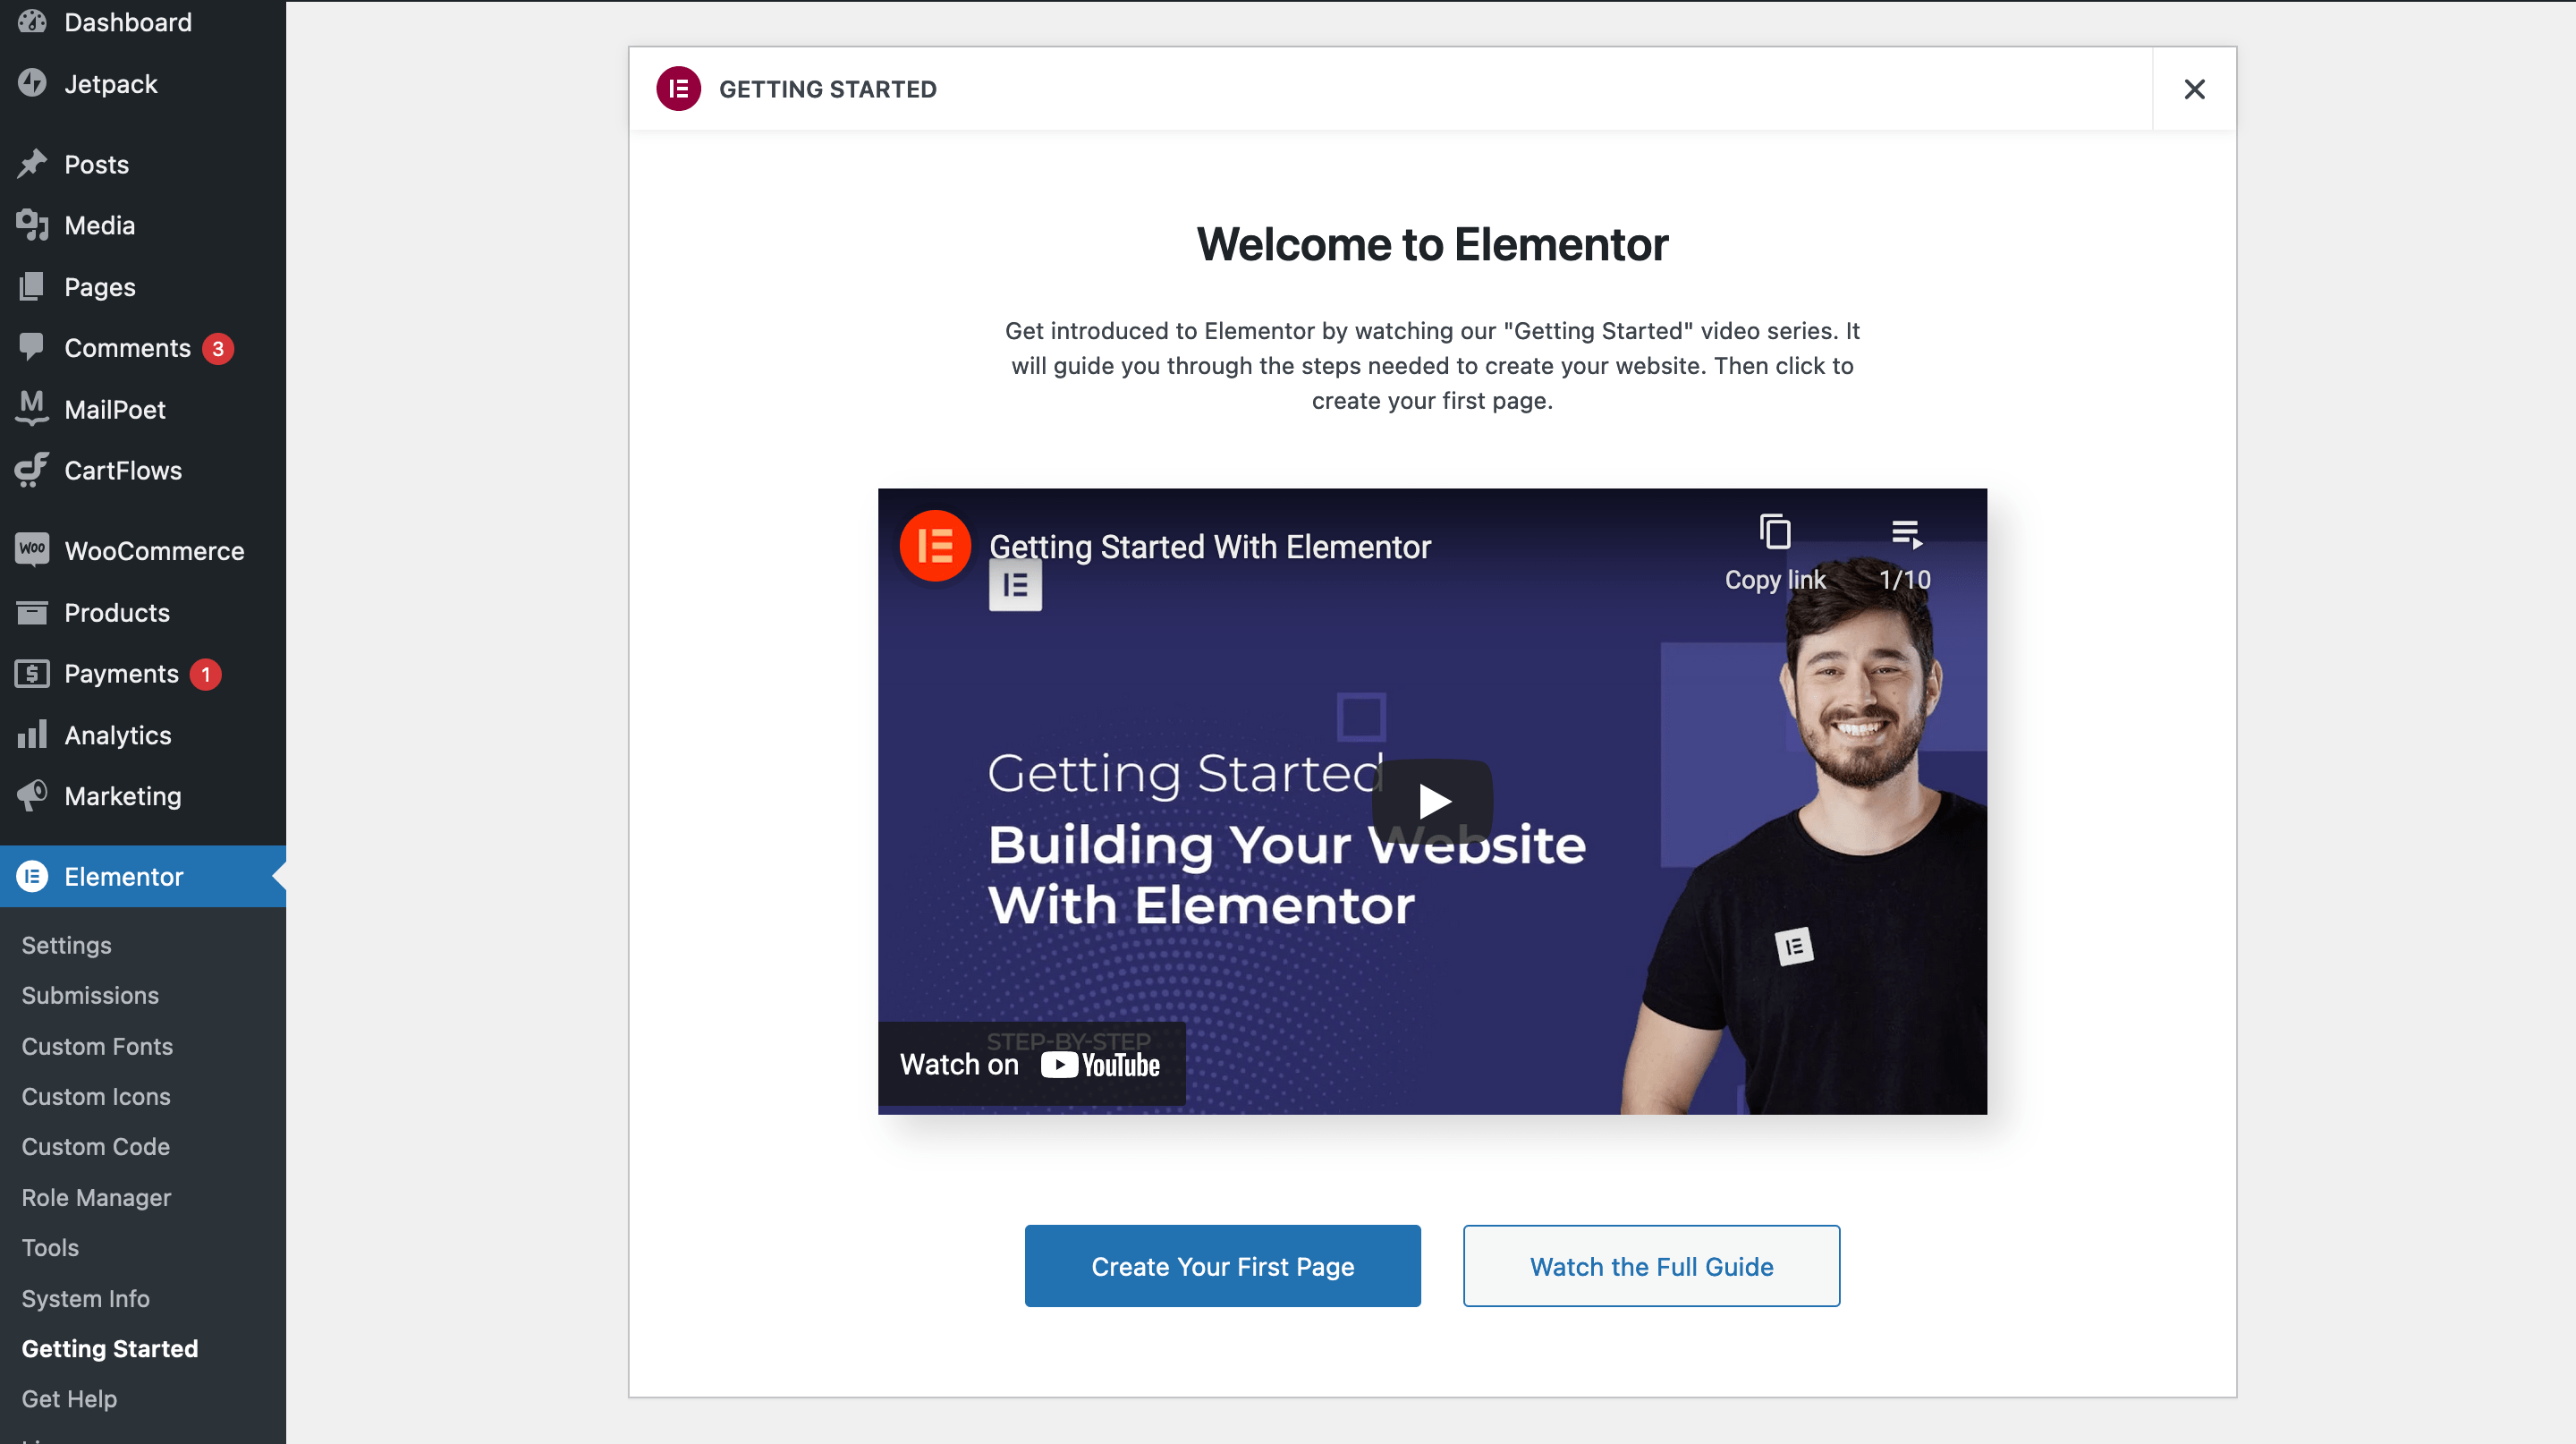 The Elementor Getting Started page.